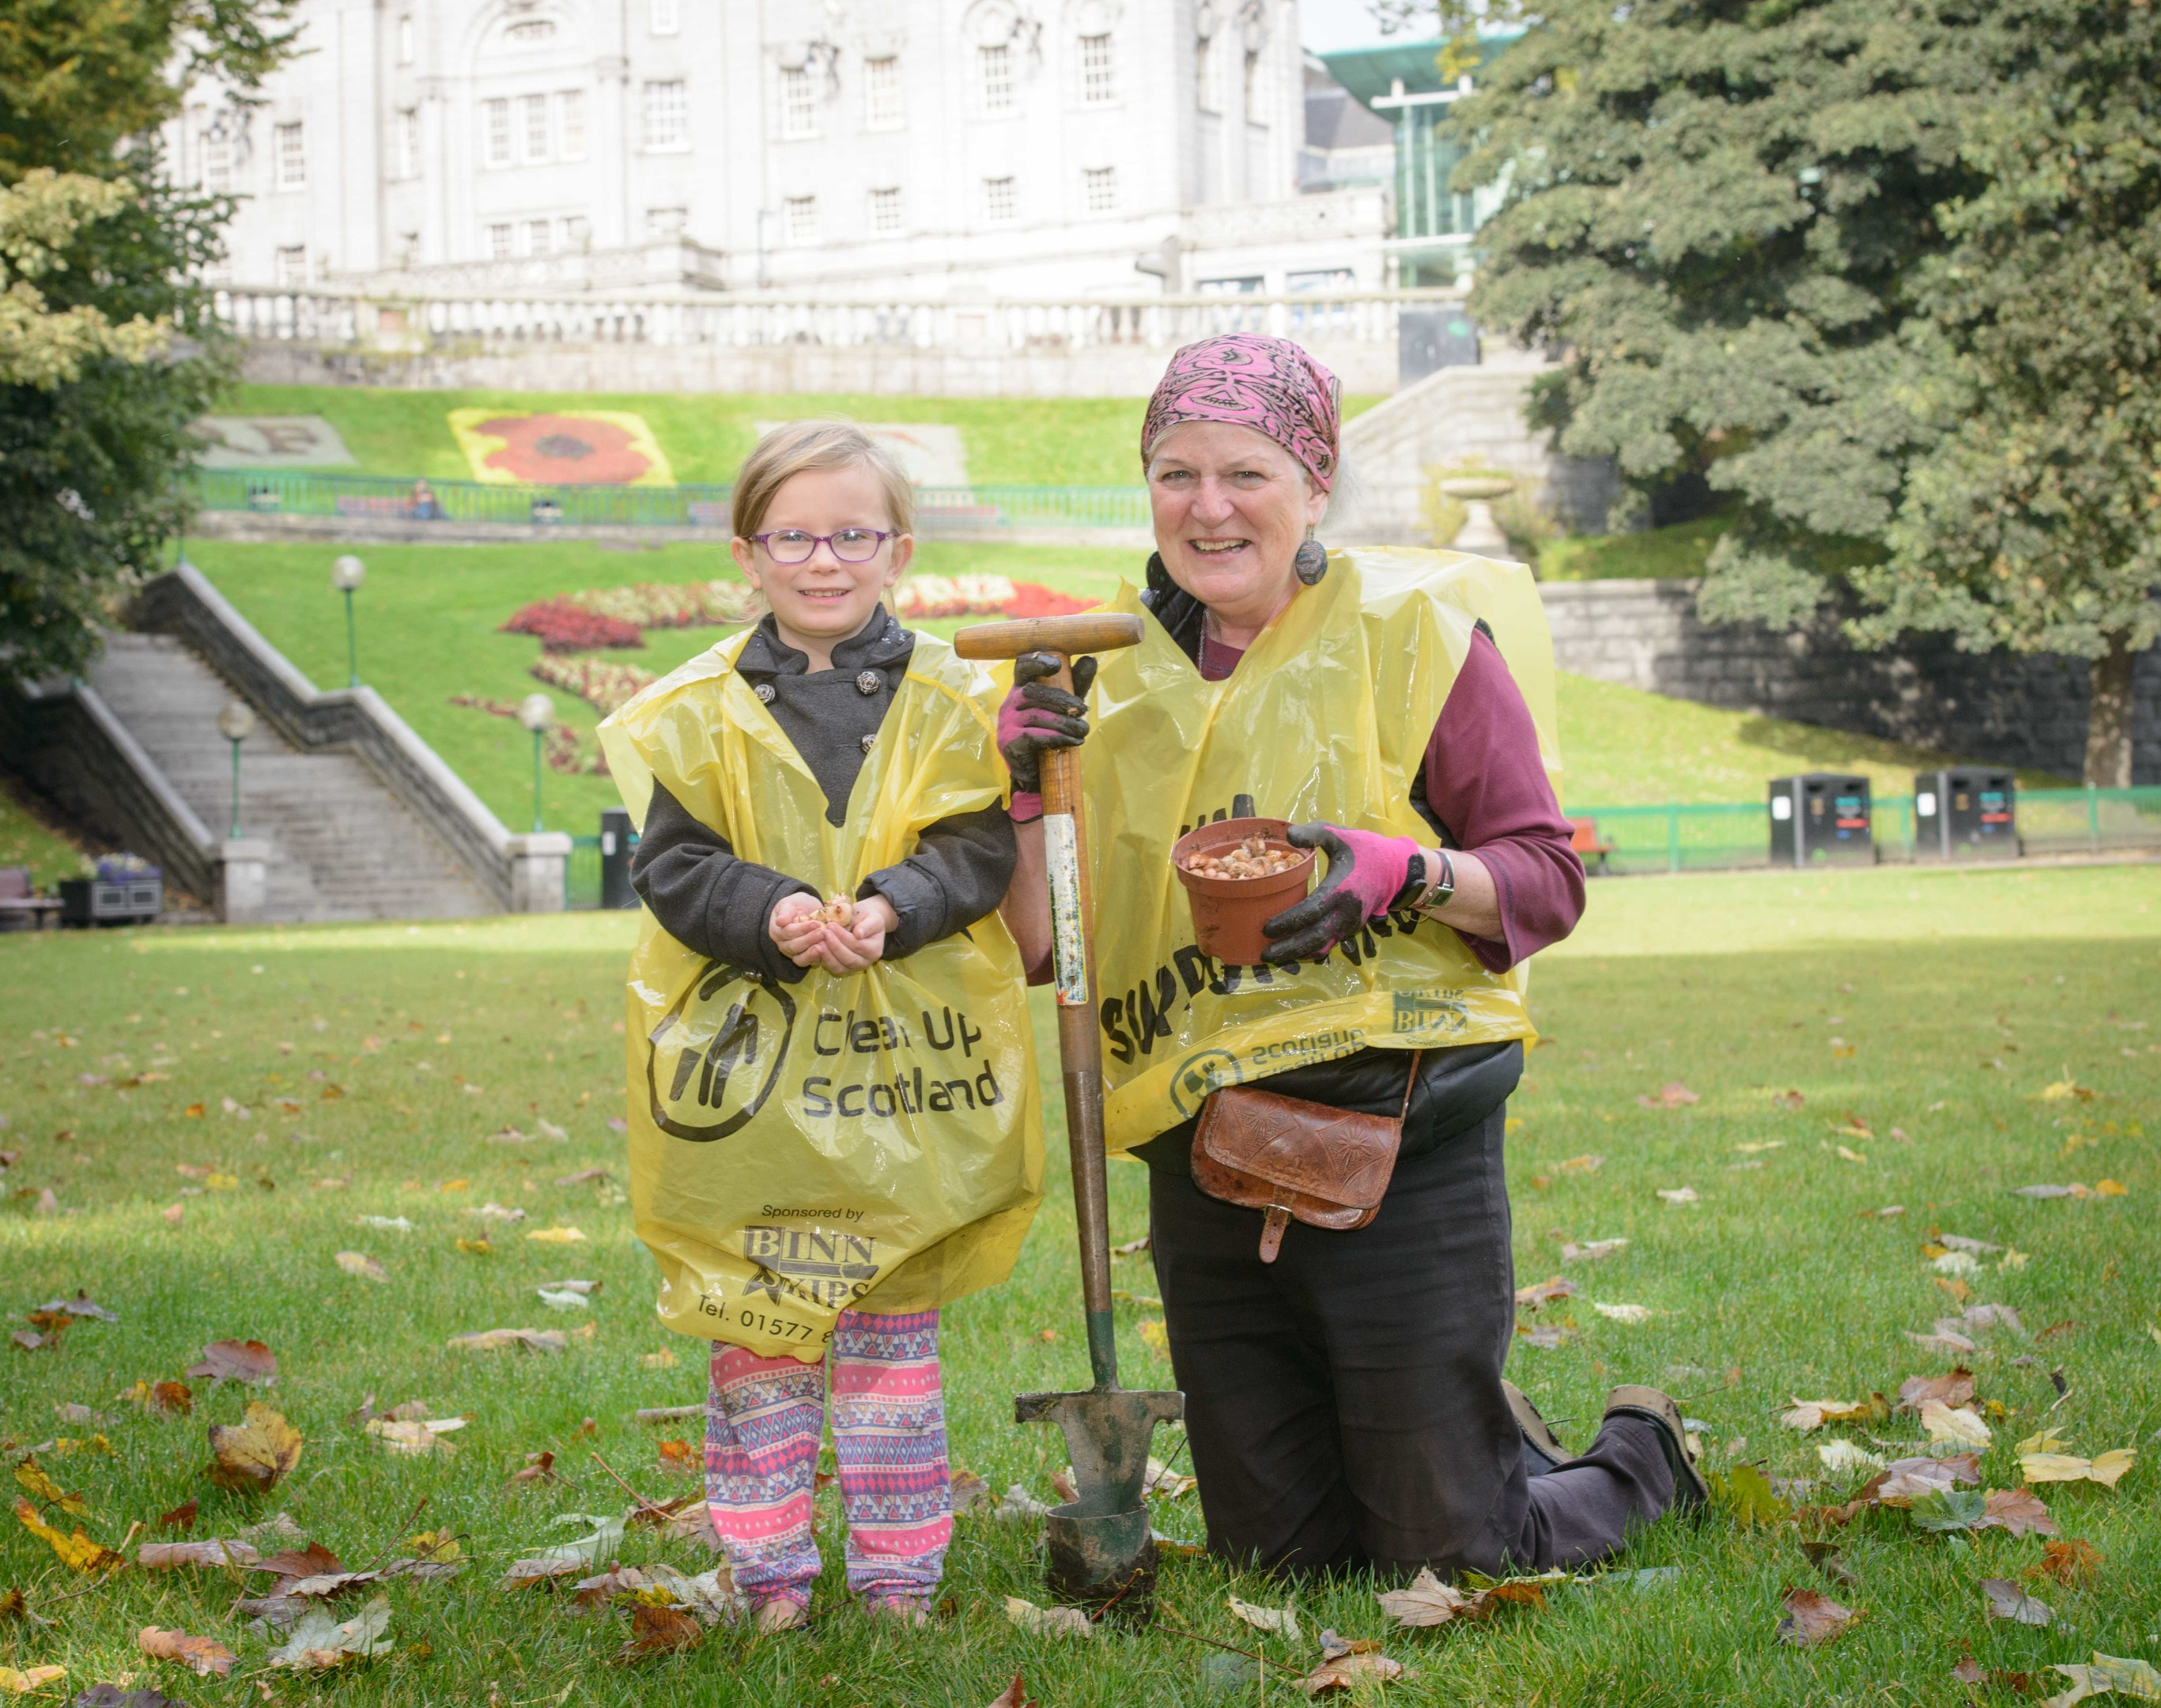 Green-fingered volunteers helped plant around 50,000 bulbs at Union Terrace Gardens